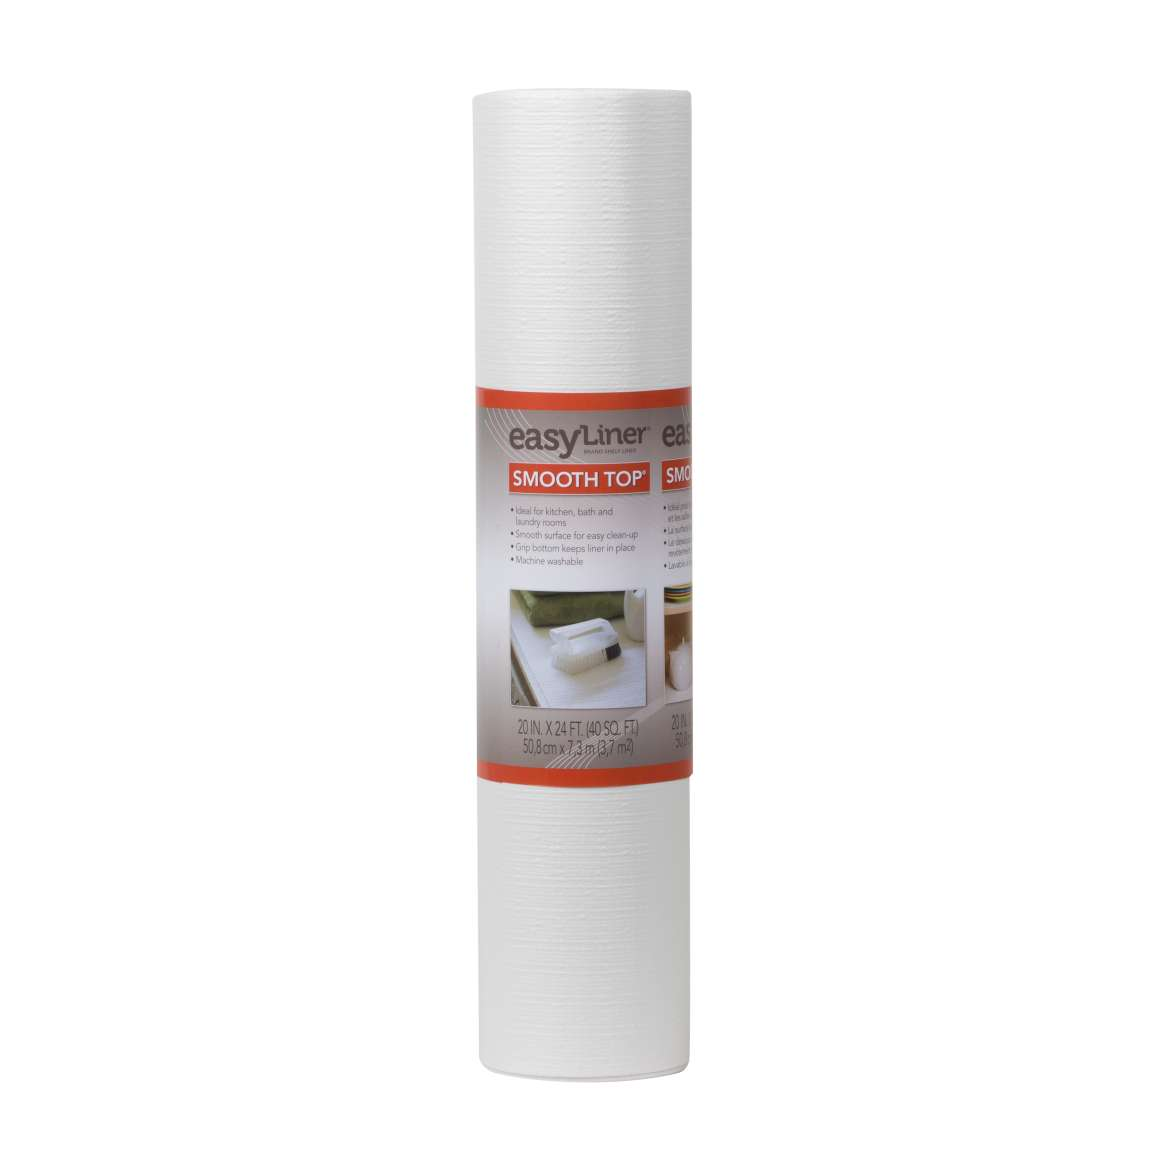 Smooth Top® Easy Liner® Brand Shelf Liner - White, 20 in. x 24 ft. Image